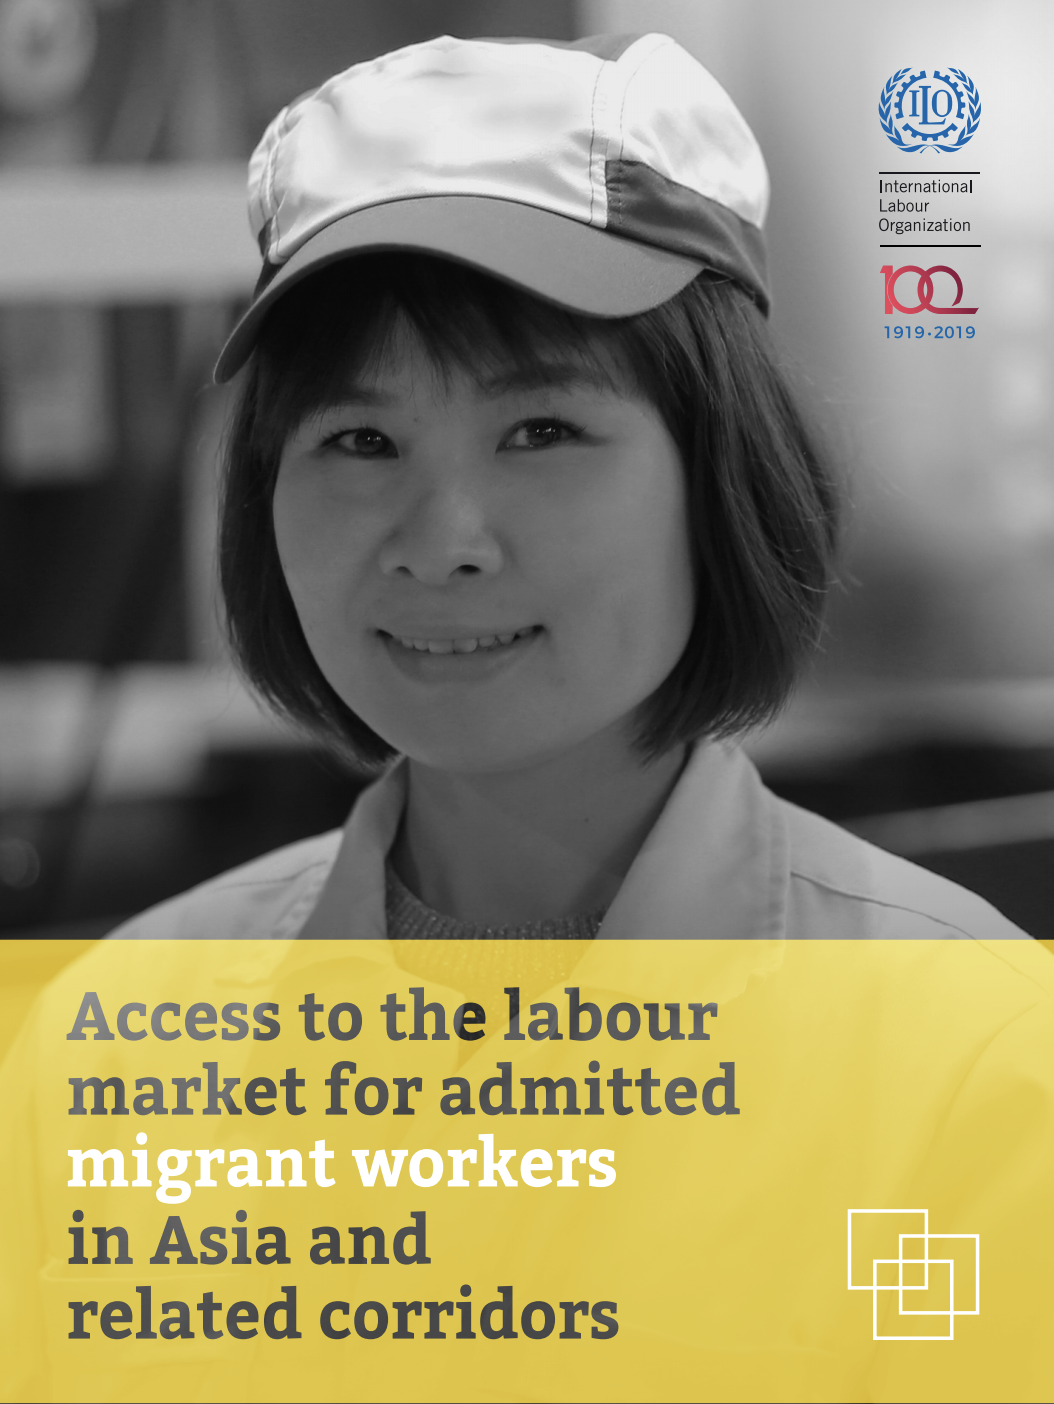 Access to the labour market for admitted migrant workers in Asia and related corridors